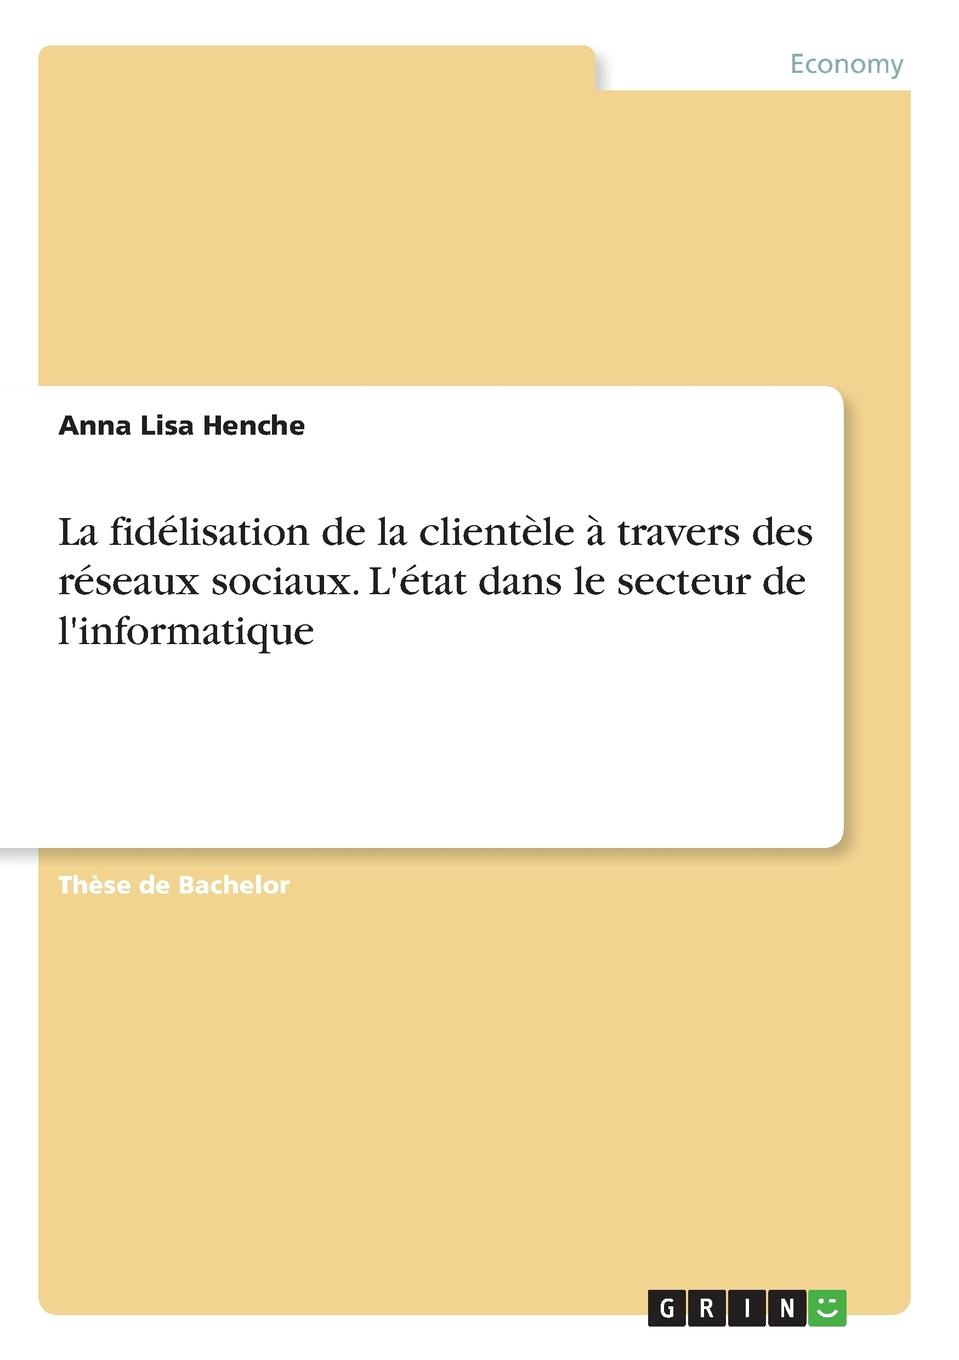 Anna Lisa Henche La fidelisation de la clientele a travers des reseaux sociaux. L.etat dans le secteur de l.informatique sully prudhomme l expression dans les beaux arts application de la psychologie a l etude de l artiste et des beaux arts prose 1883 french edition